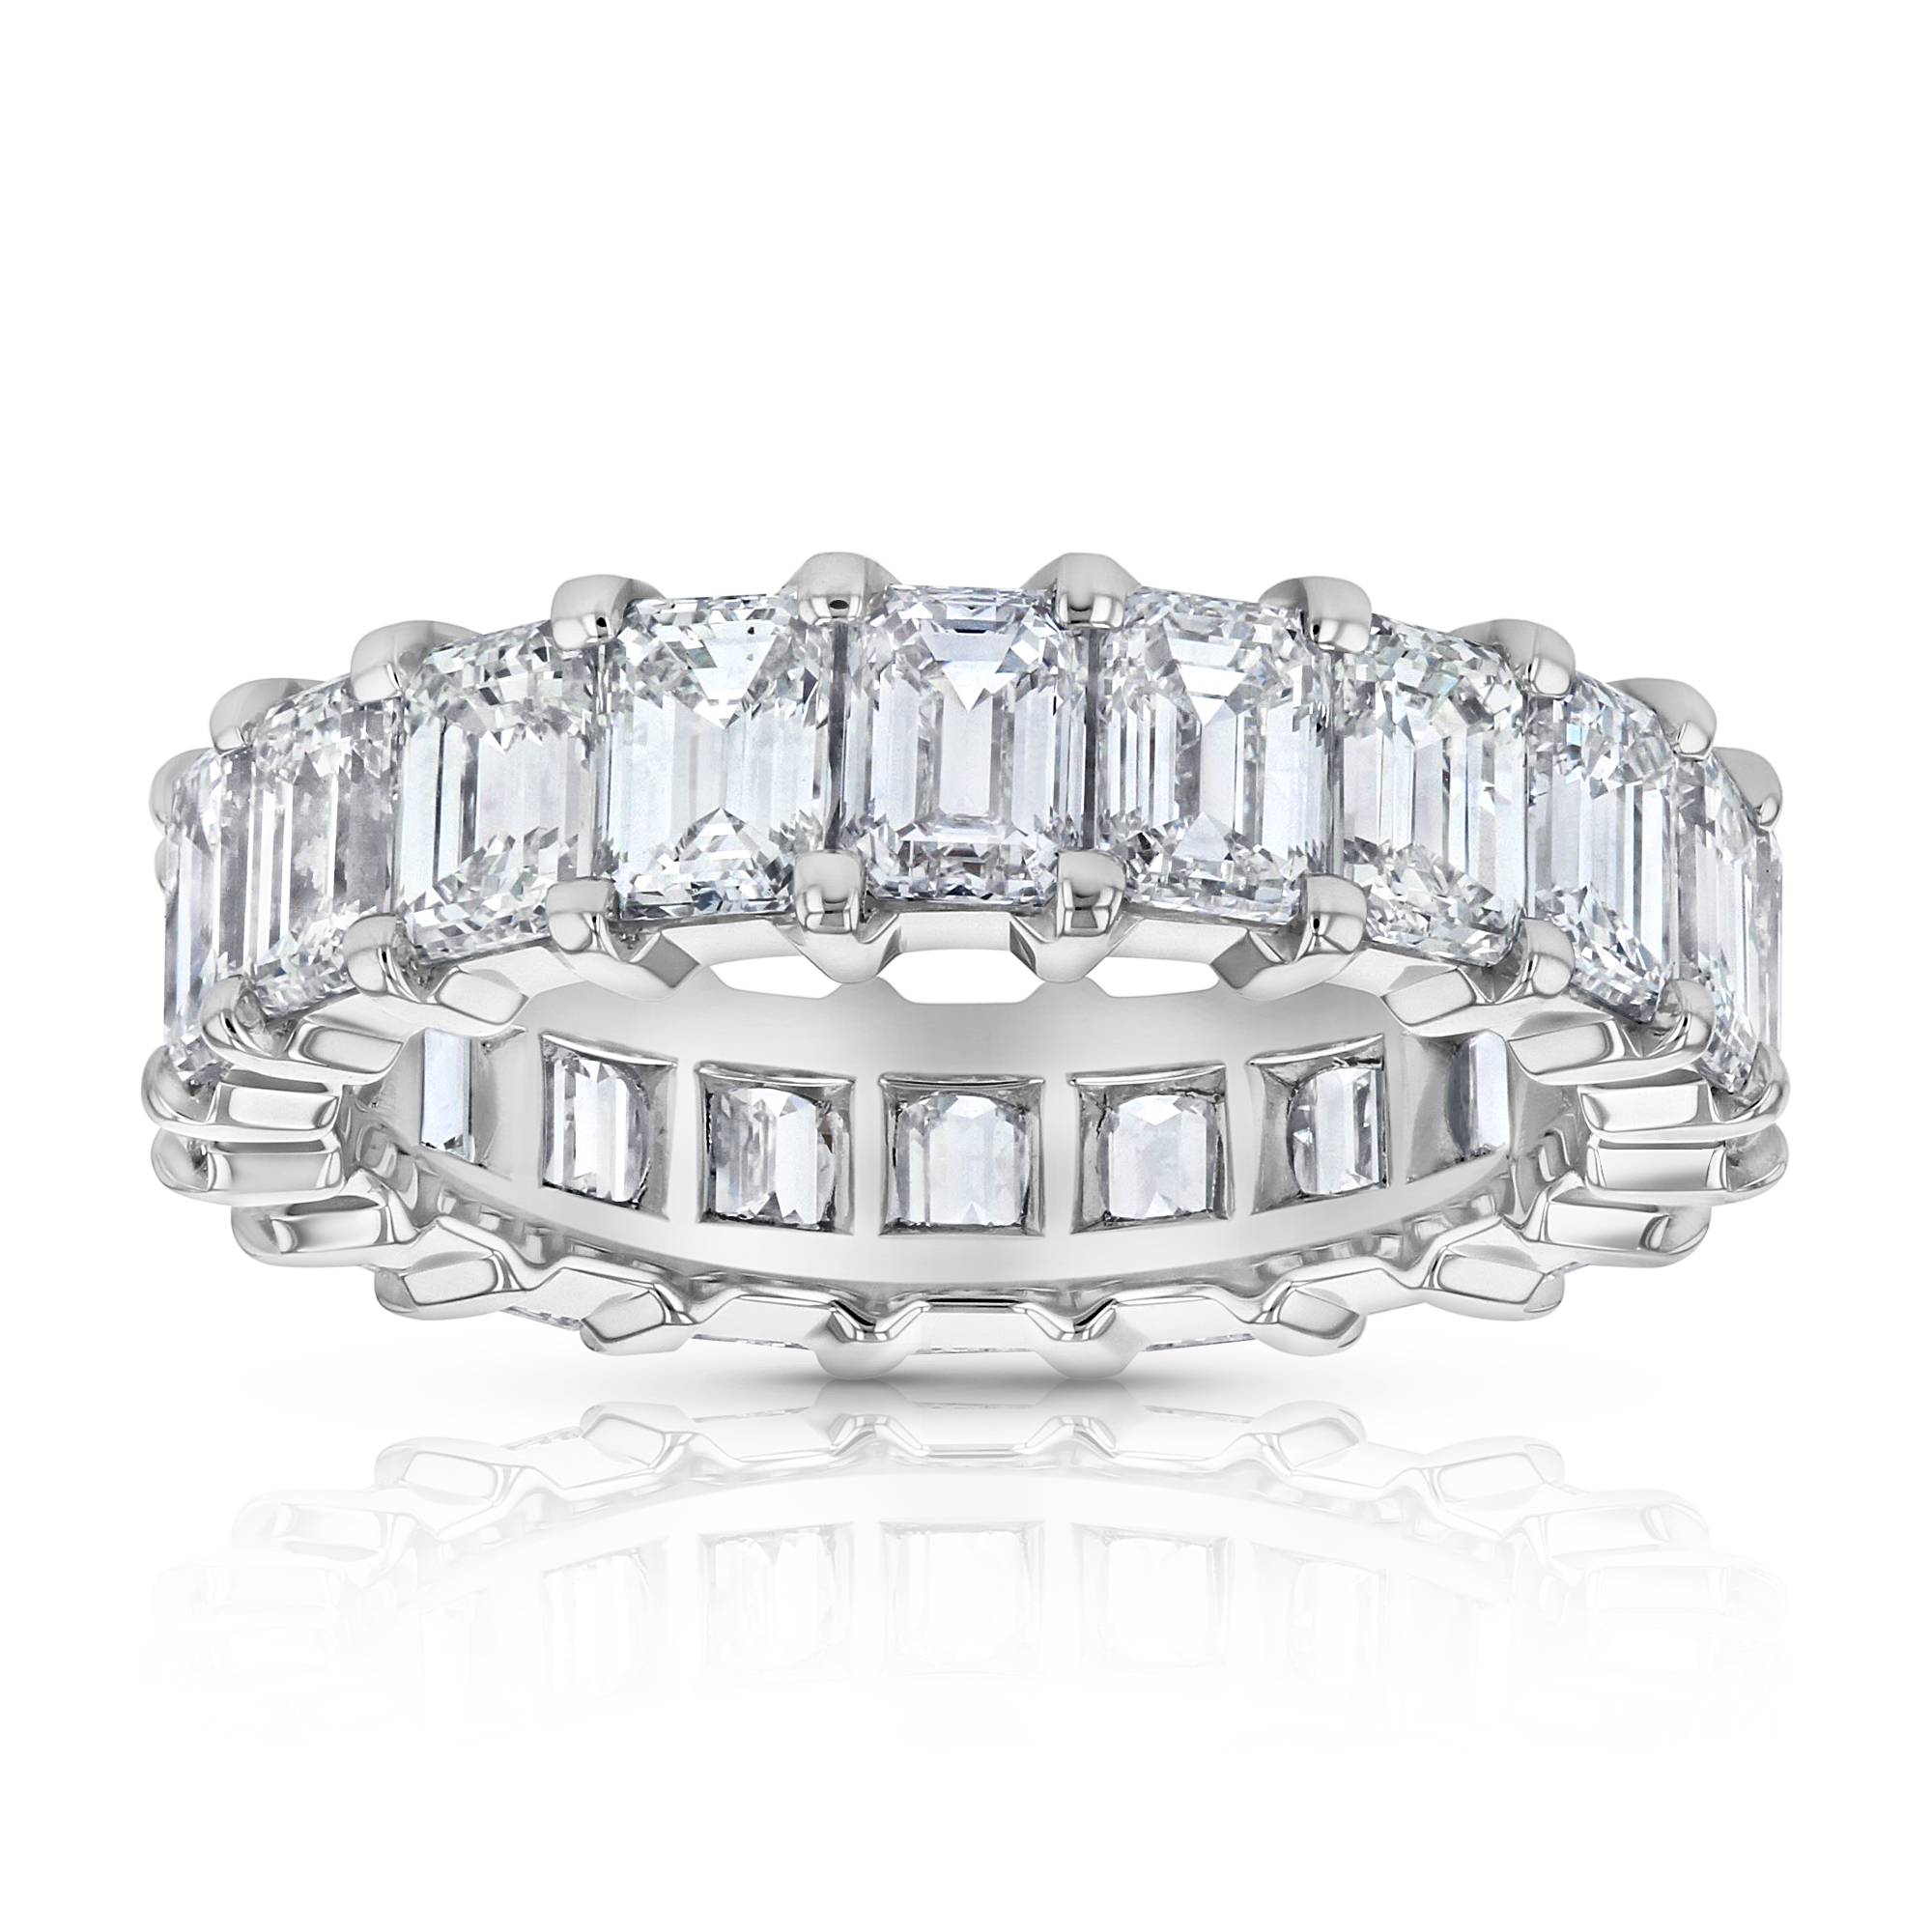 View 6.13ctw Emerald Cut Eternity Band in 18k White Gold